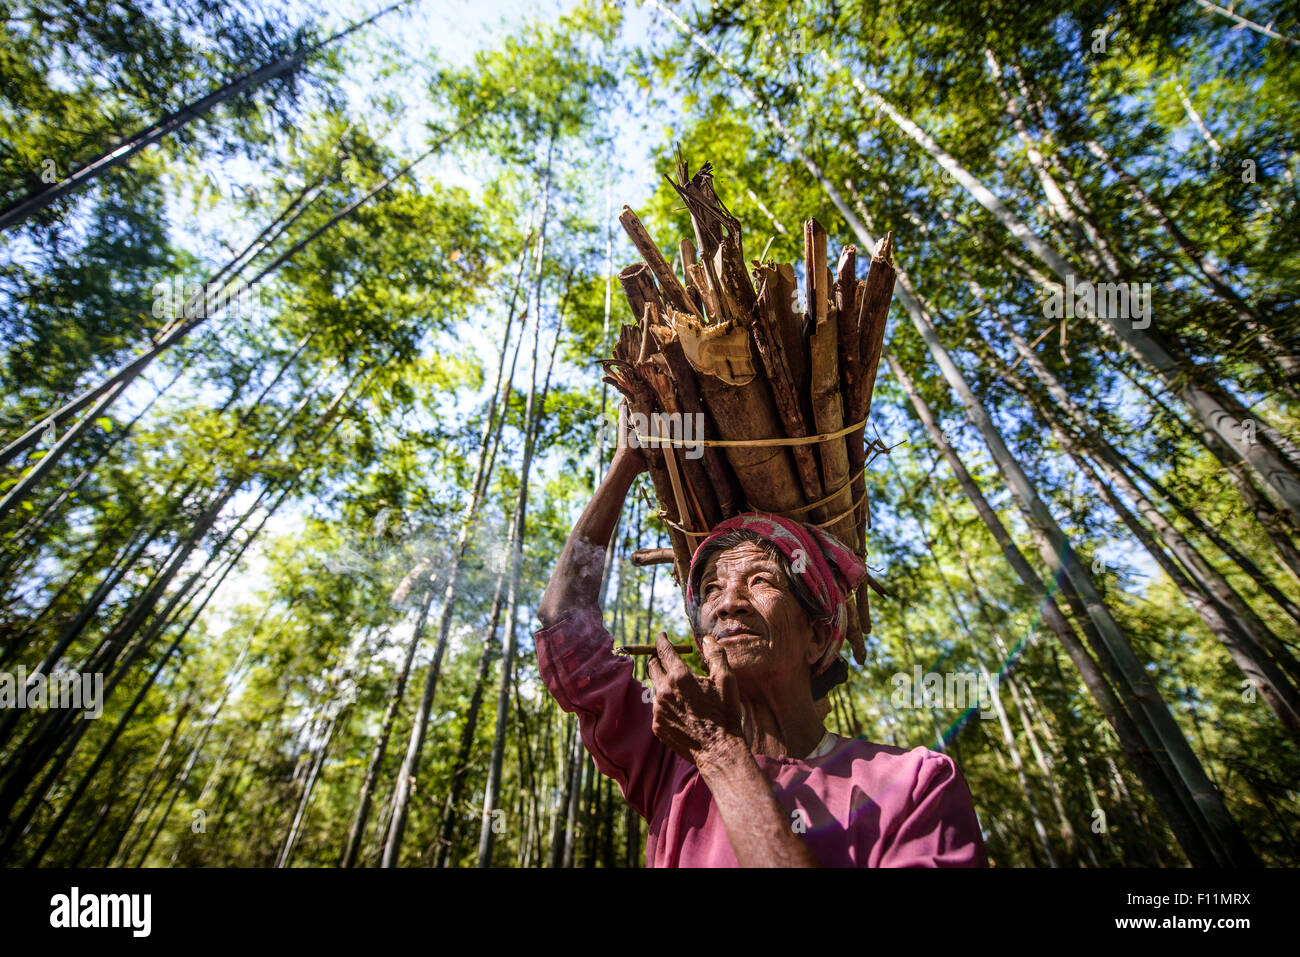 Low angle view of Asian man carrying stick bundle on her head - Stock Image